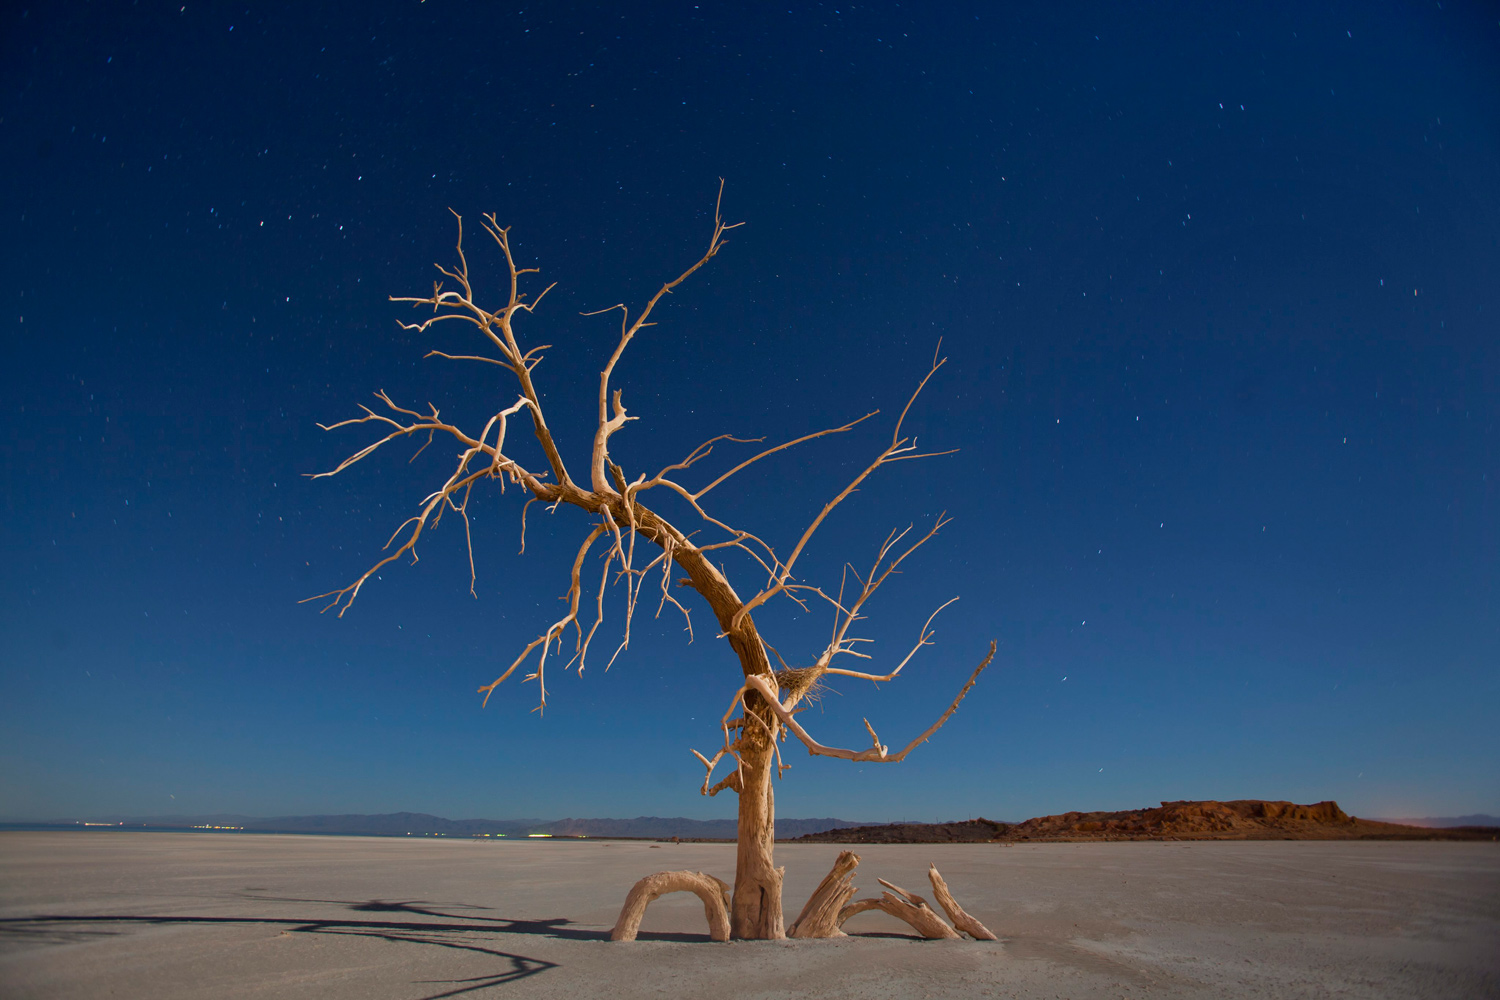 January 20, 2011. A dead oak tree glows under a full moon in a salt pan on the southern end of the Salton Sea near Niland, California. Erosion and high toxicity levels from farm runoff has left the Salton Sea increasingly contaminated, and lake-side towns all but deserted.